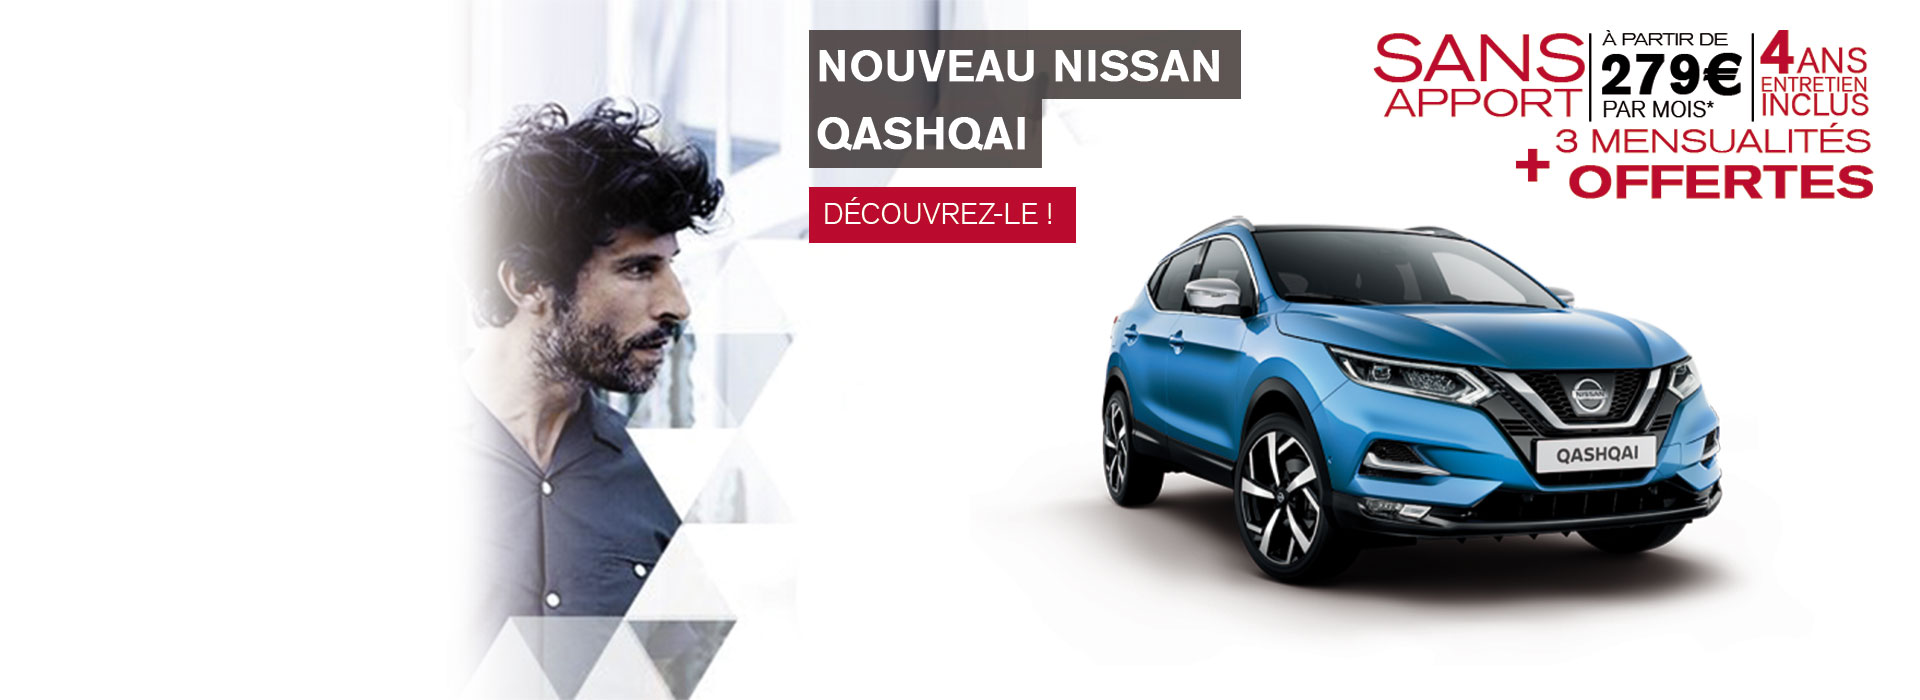 nissan thionville vente voiture neuve vehicule occasion. Black Bedroom Furniture Sets. Home Design Ideas